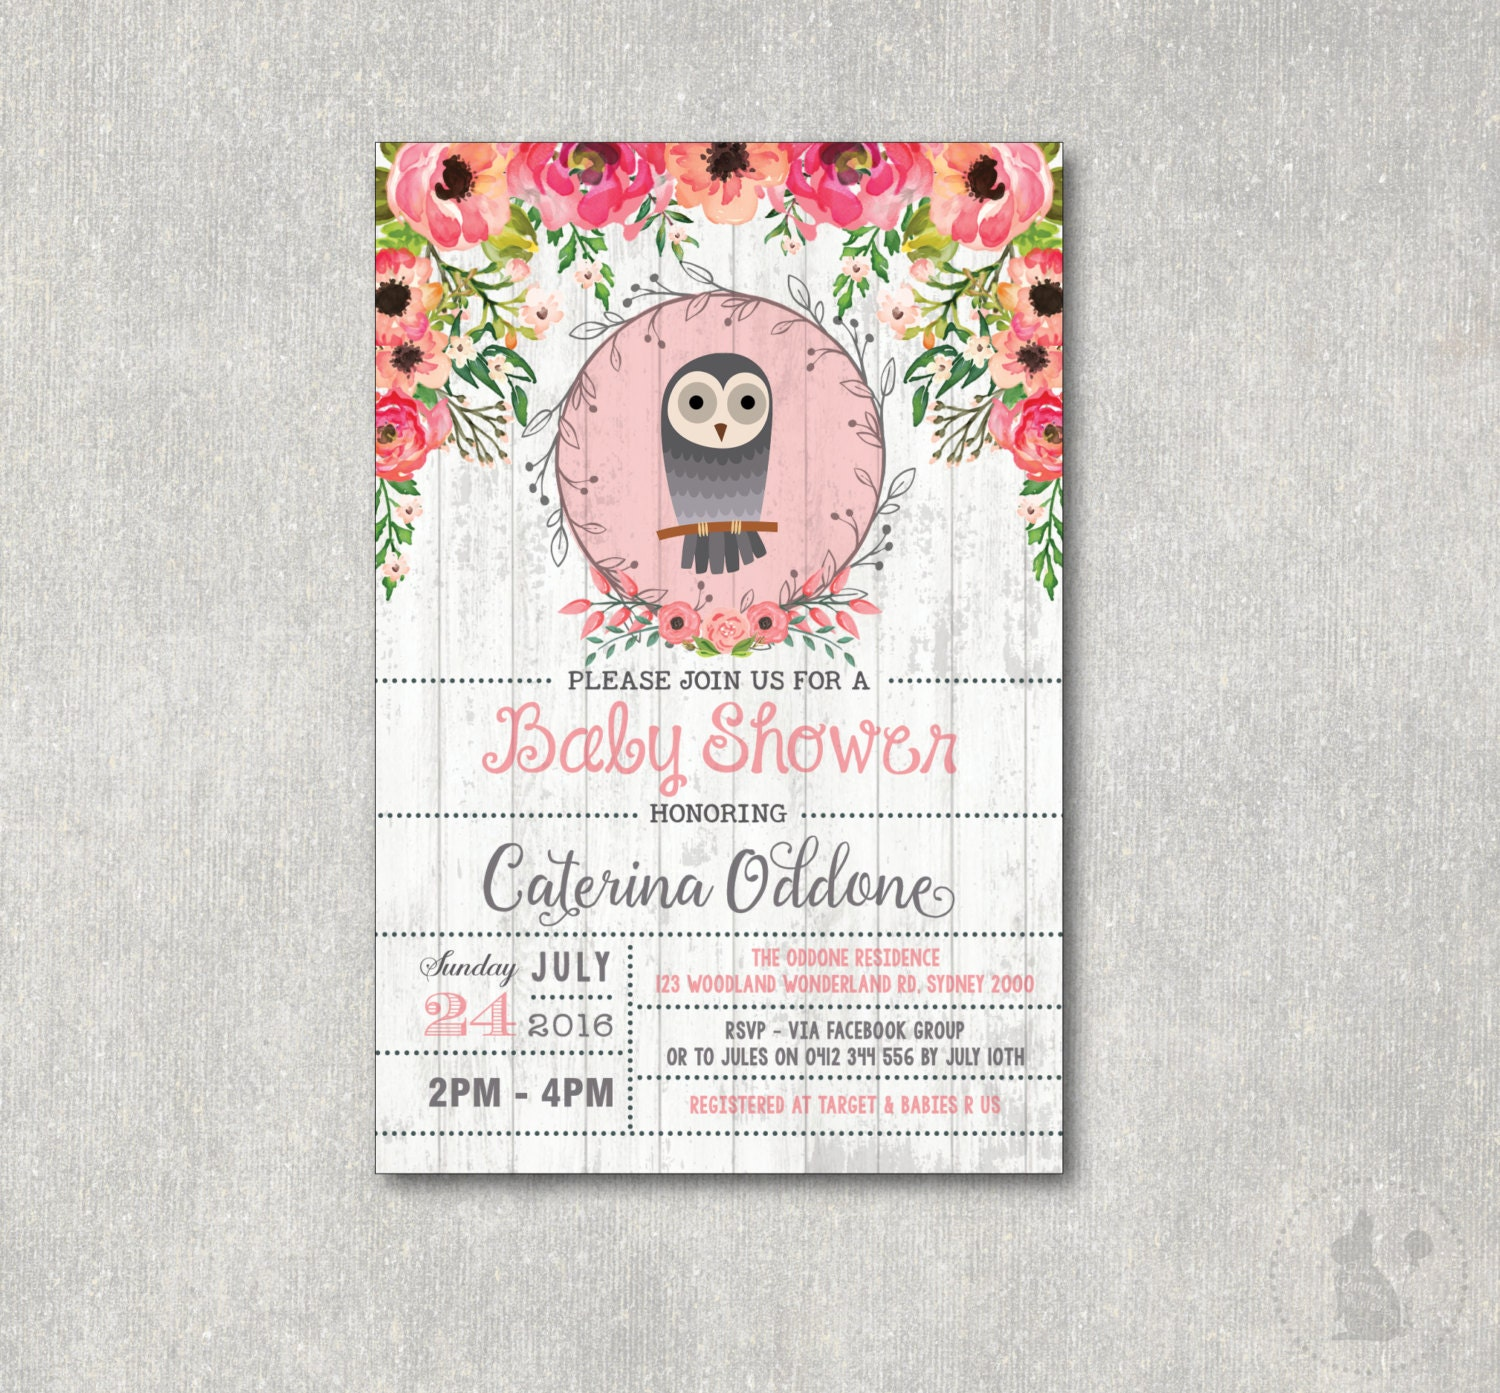 Vintage Owl Baby Shower Invitations: OWL Baby Shower Invitation. Vintage Flower Baby Shower DIGITAL